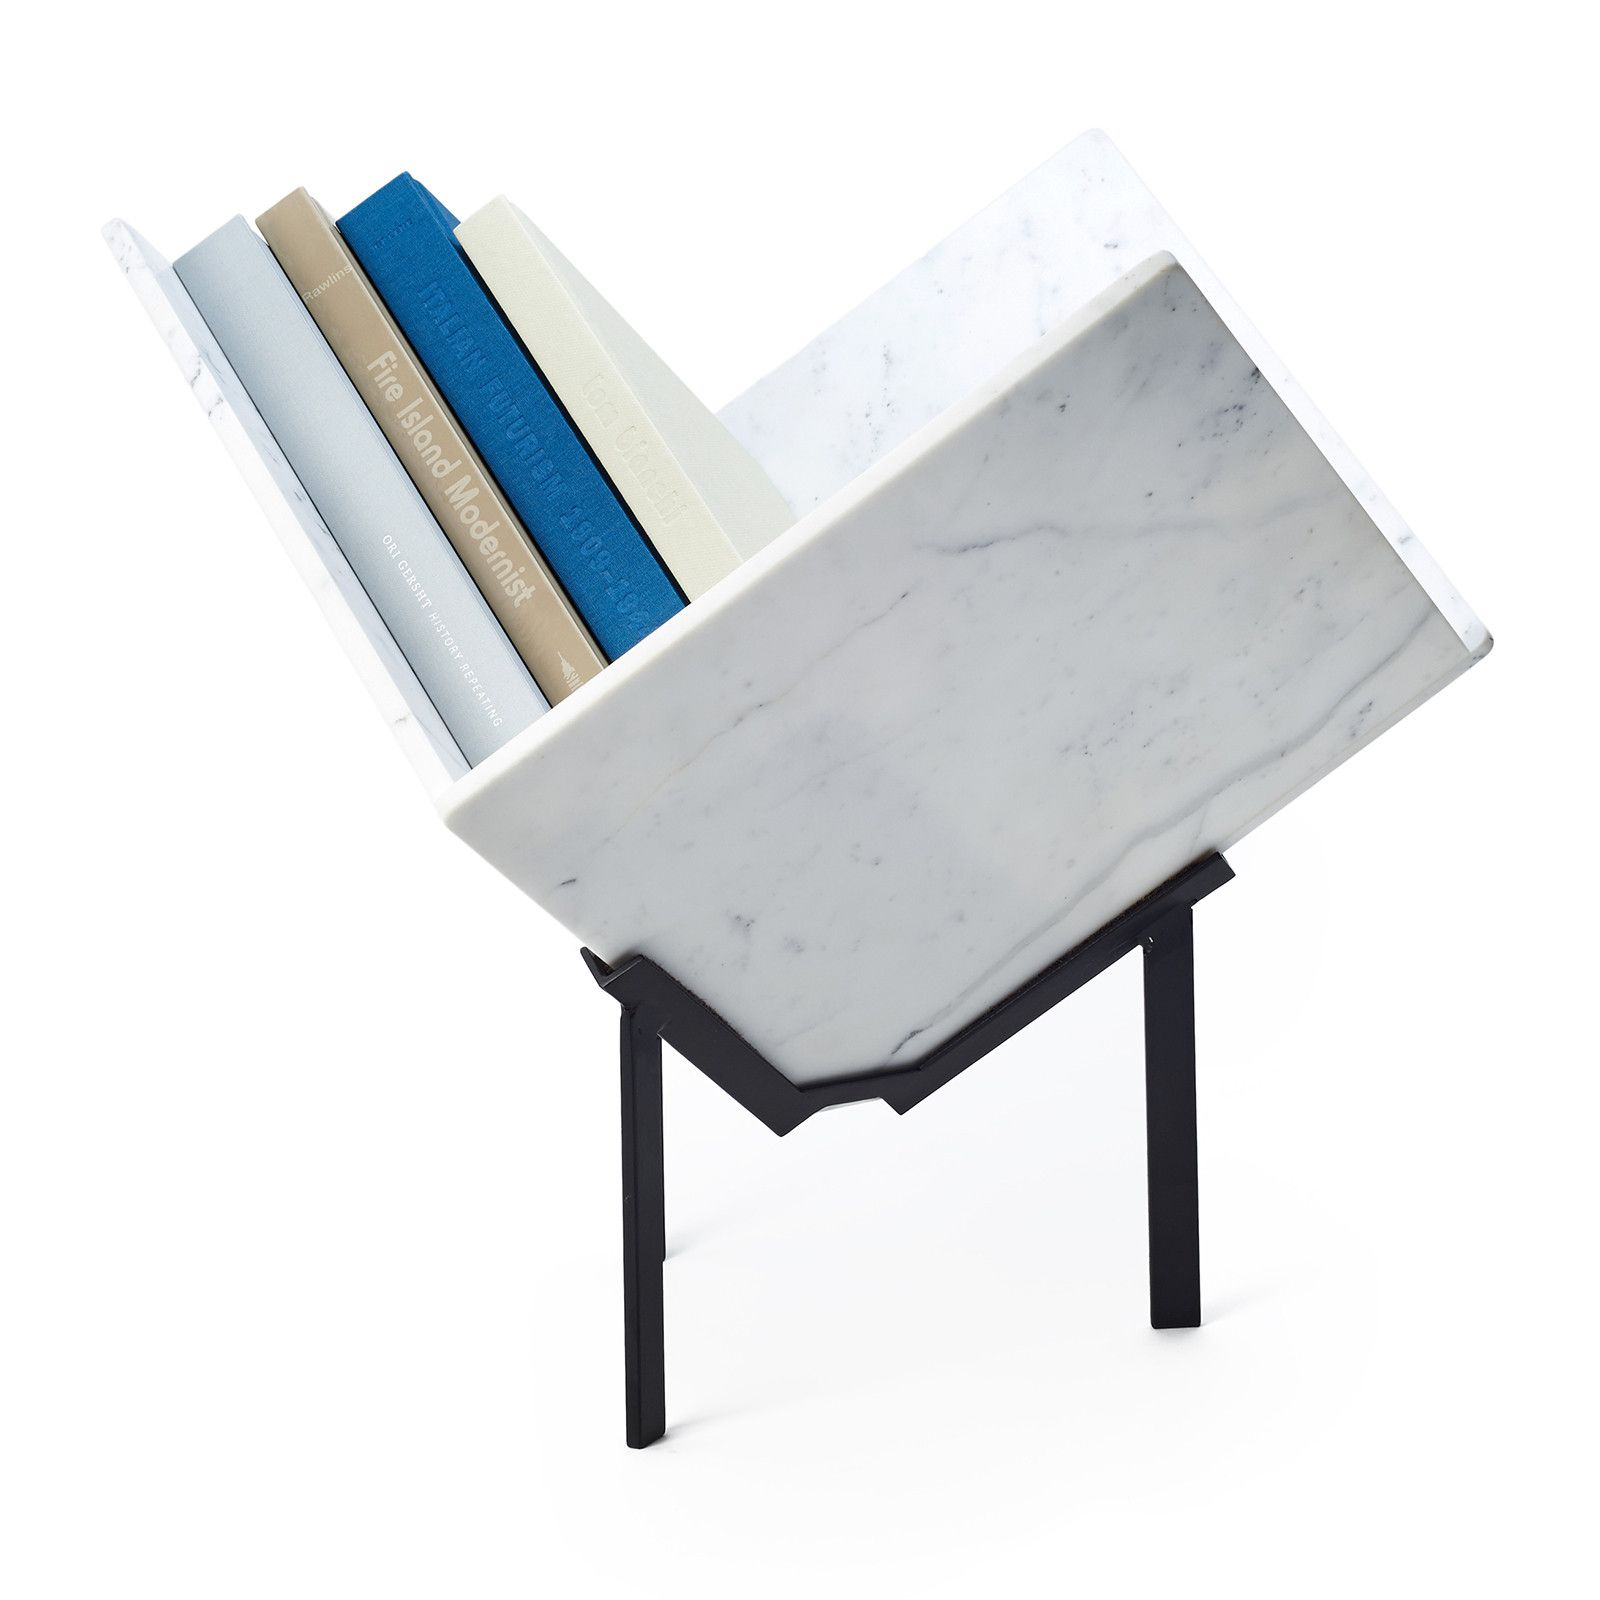 Large Third Eye Vessel Book Stand by Chen Chen & Kai